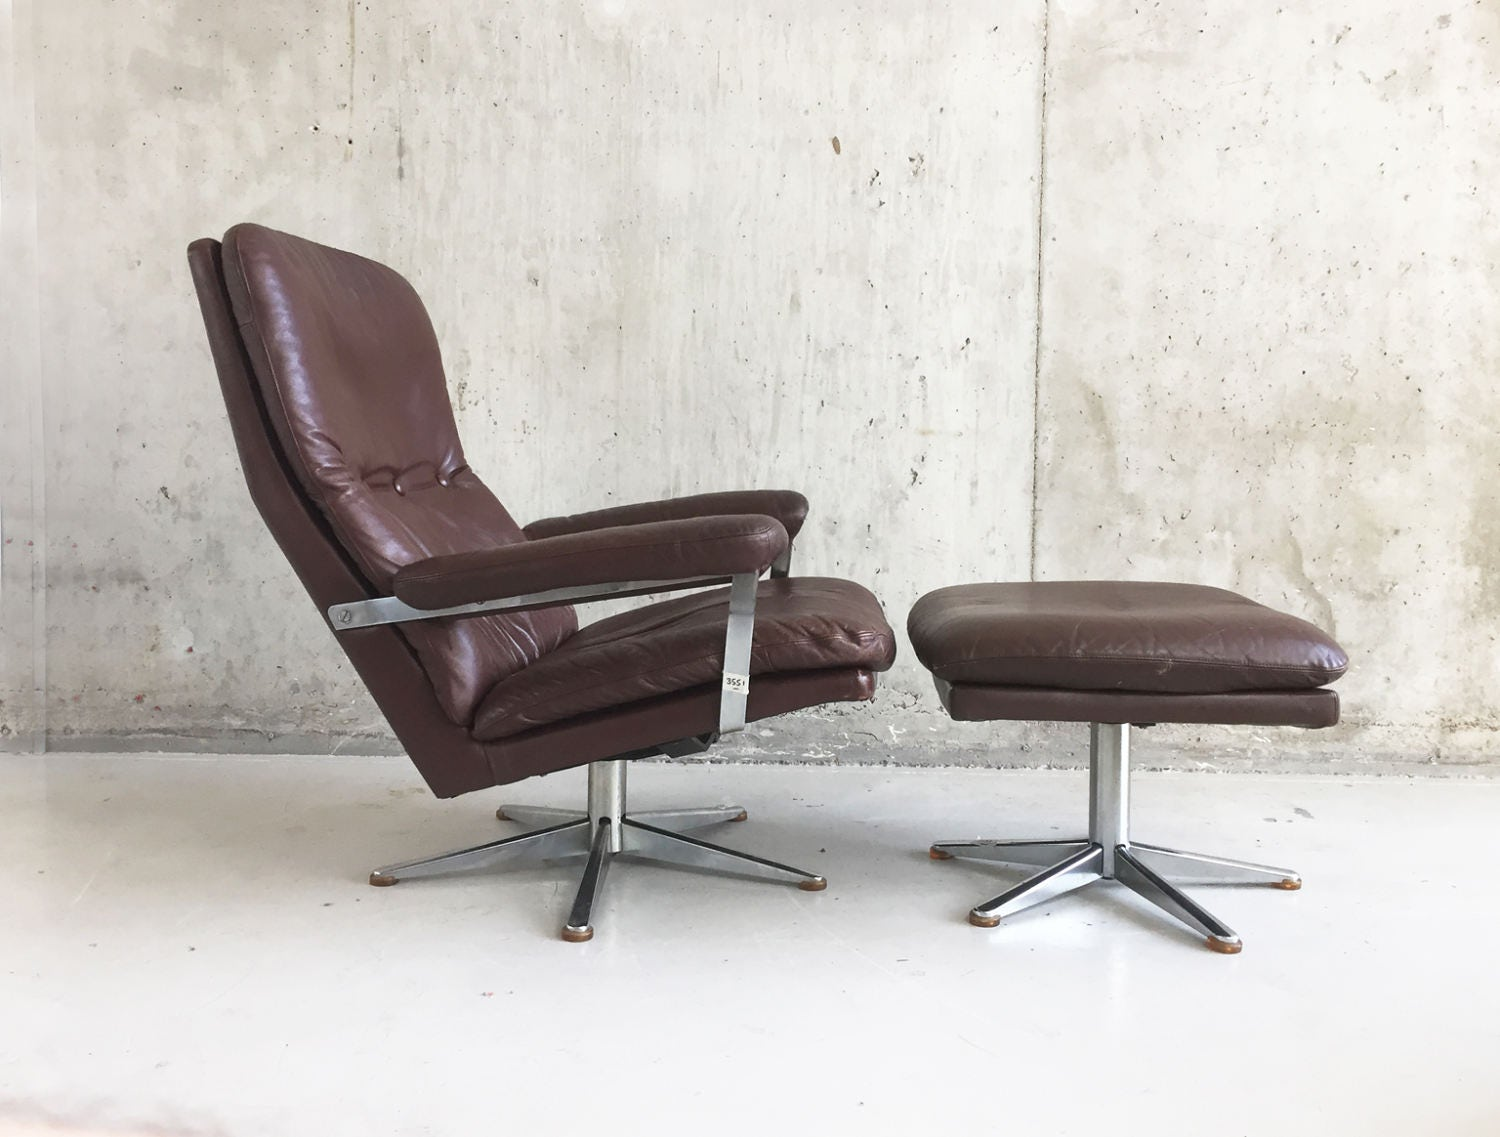 1970s Danish Mid century chestnut brown leather swivel armchair with matching footstool